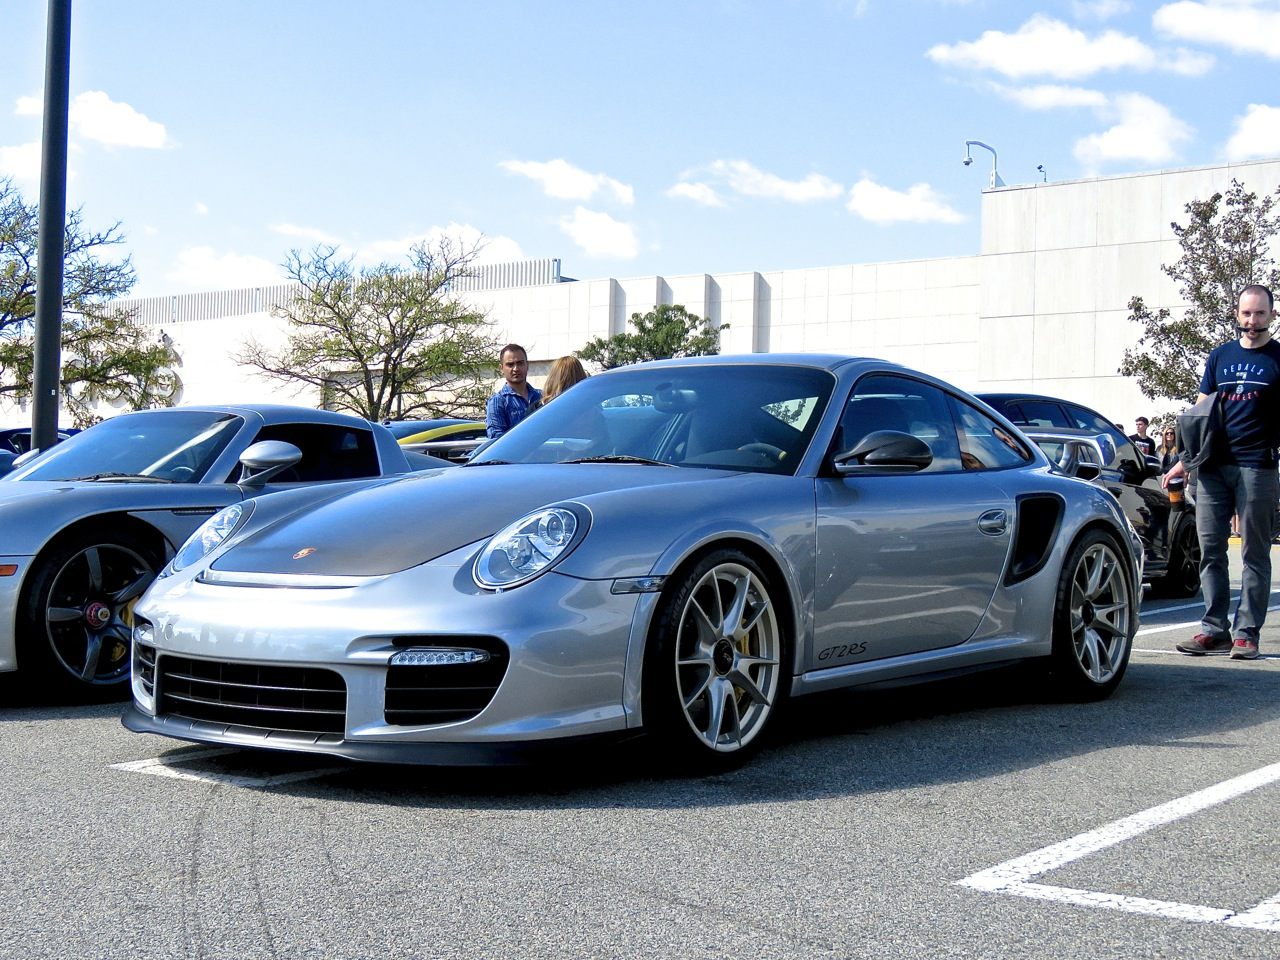 Porsche 997 GT2 RS Cars and Caffe